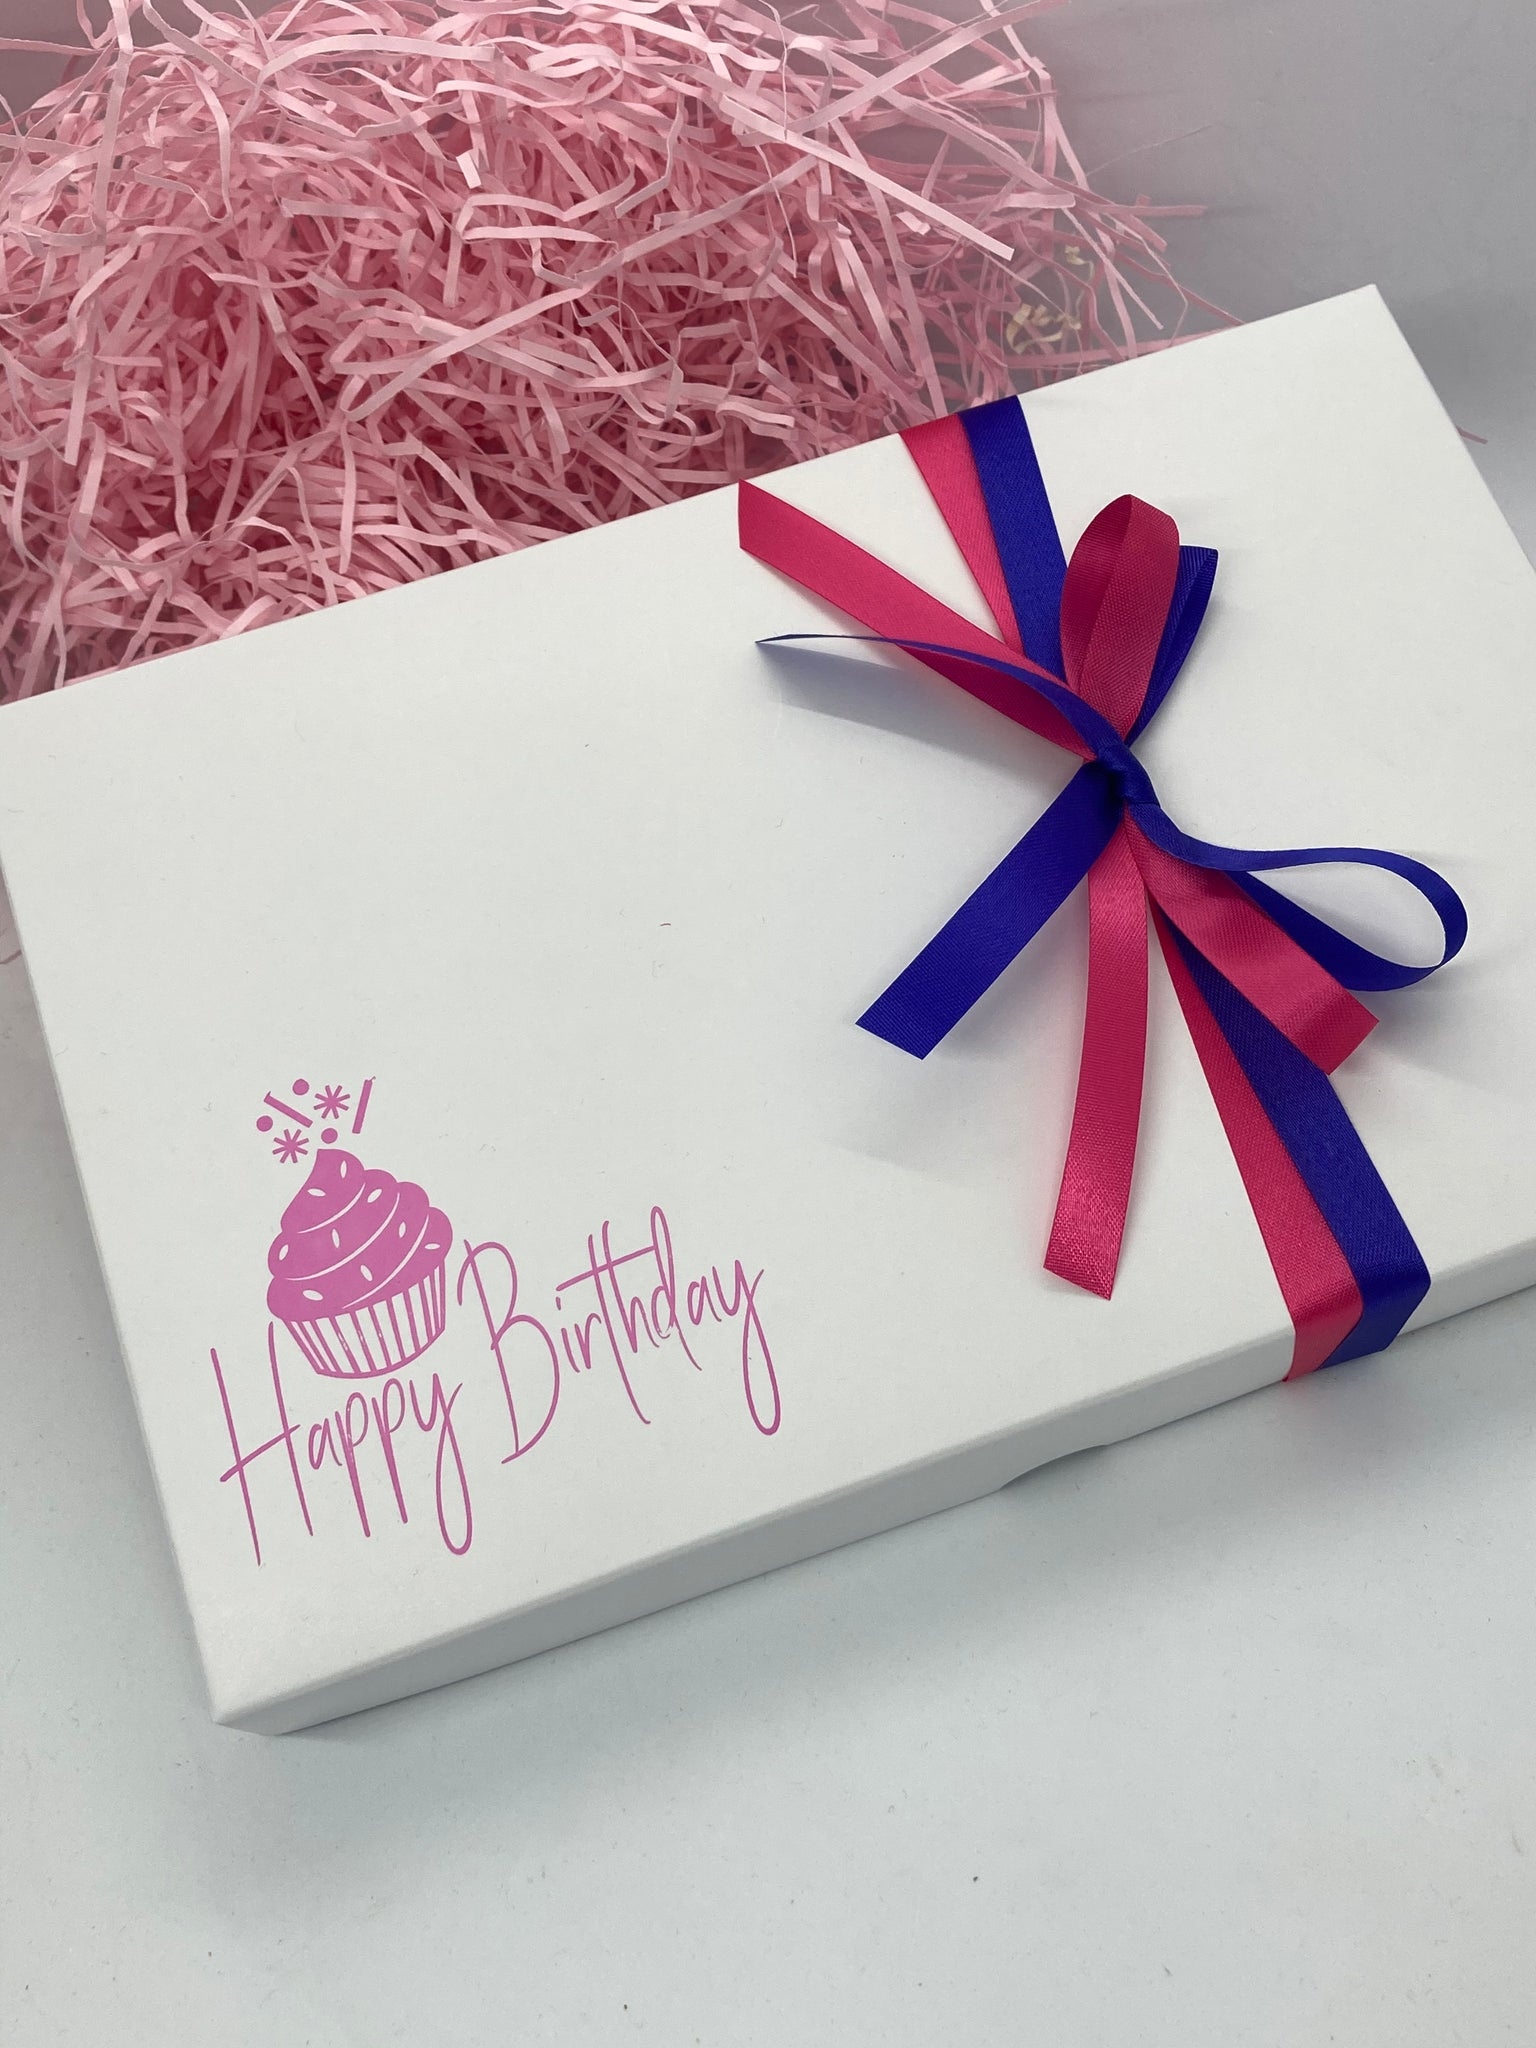 PINK BIRTHDAY DESIGN SOLID WHITE LID GIFT BOX BLANK 240x155x30mm